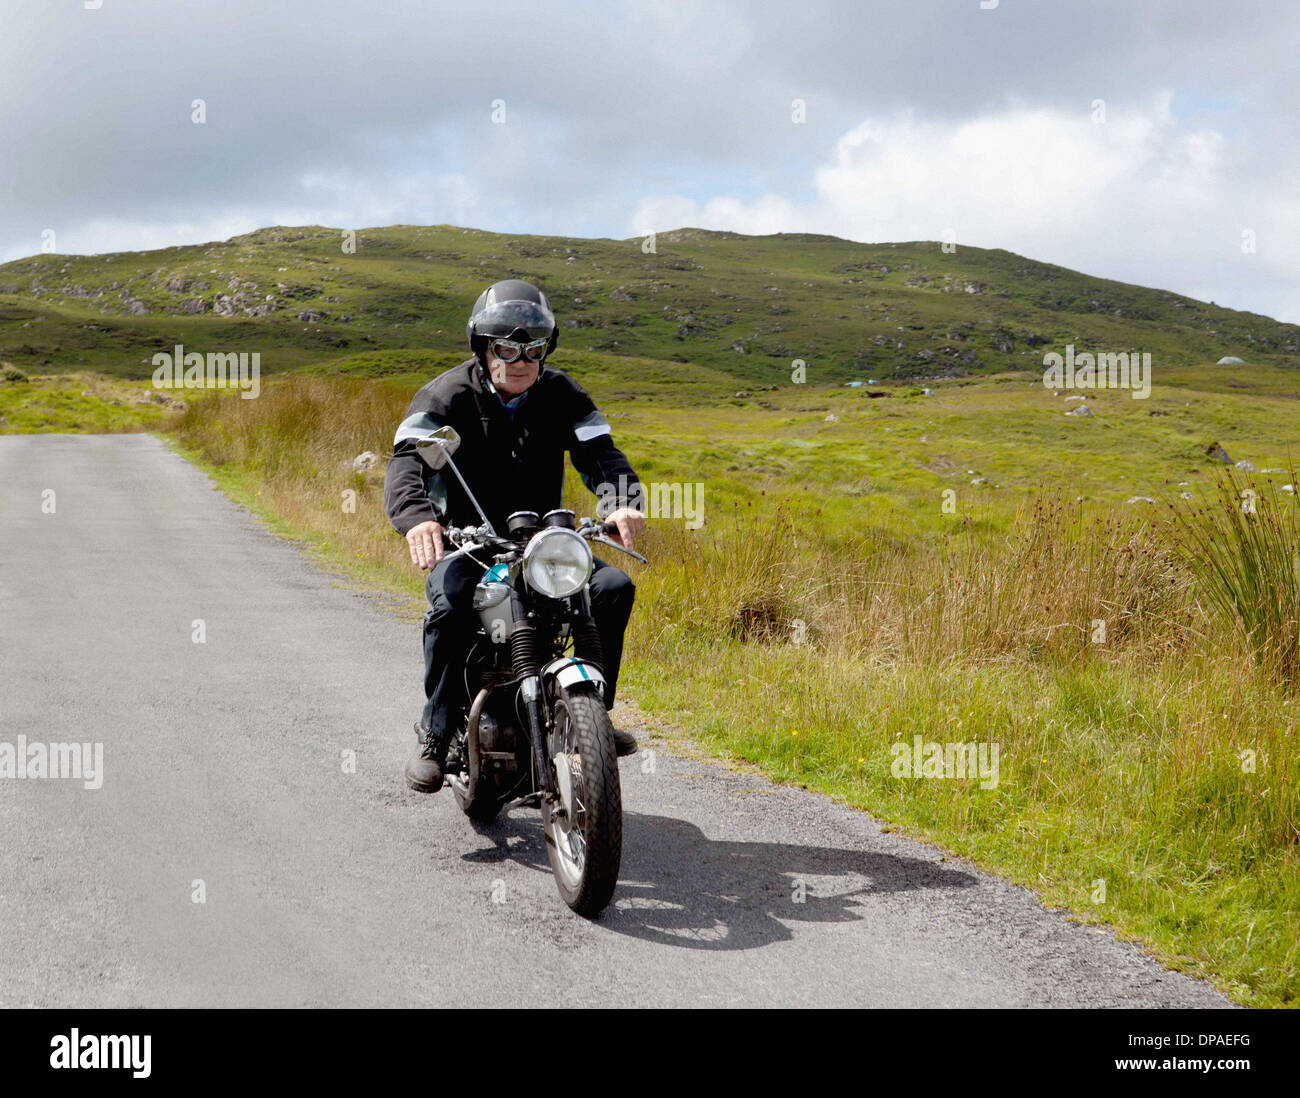 Senior male motorcyclist riding on rural road - Stock Image